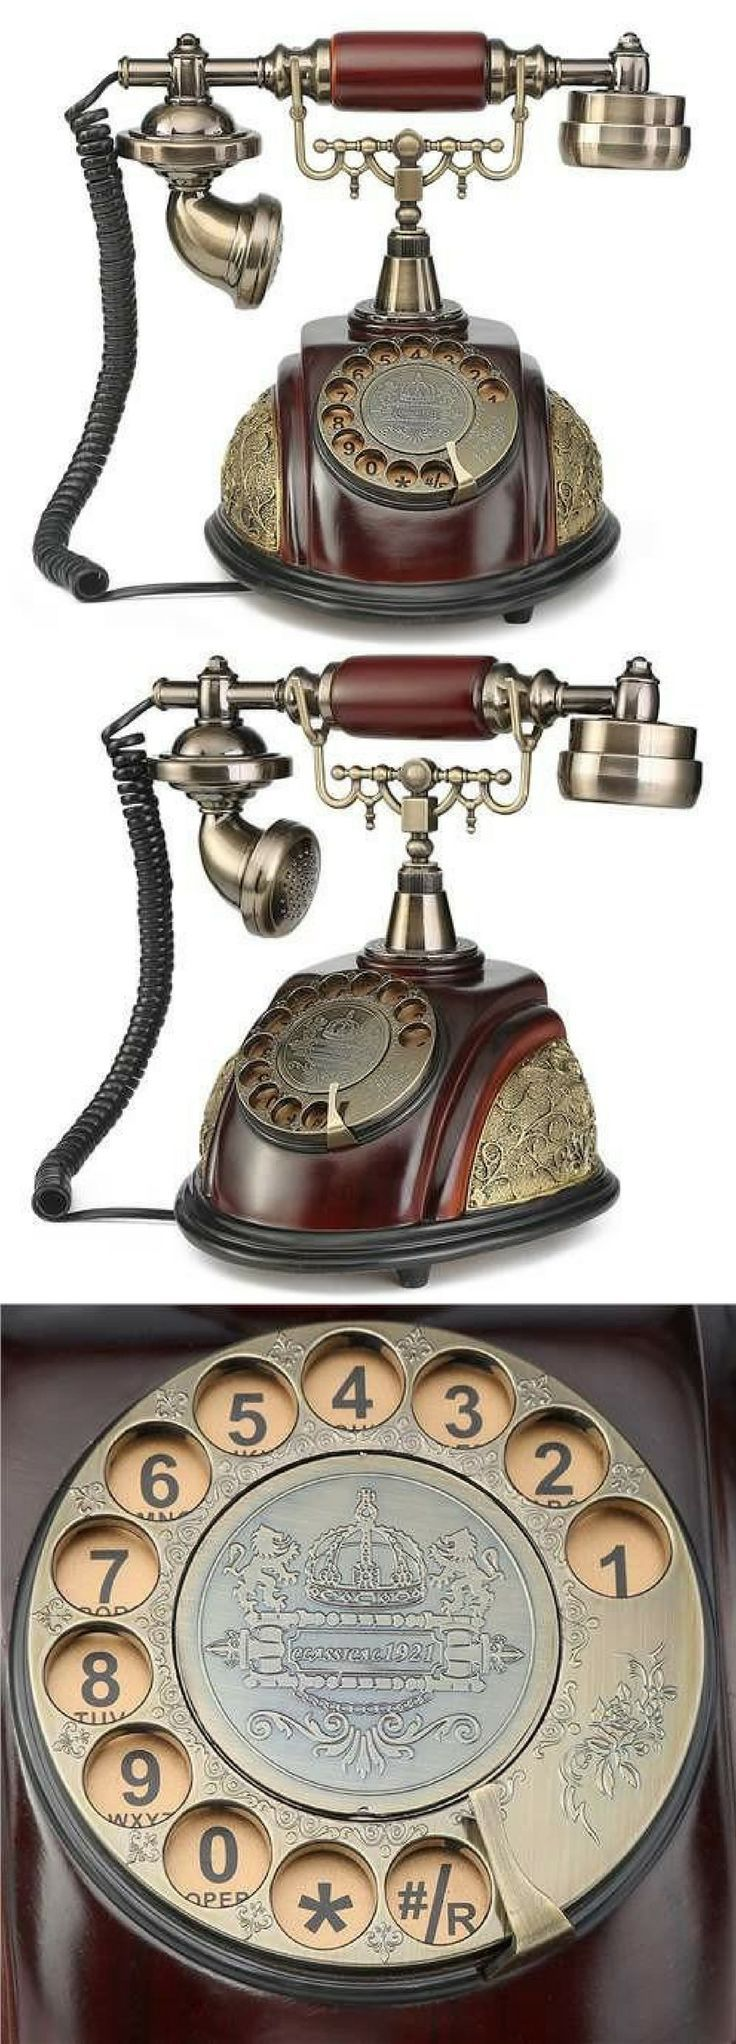 Very attractive telephone. Adds a touch of elegance to any room. Retro Vintage Antique style rotary dial desk telephone phone home living room decor. NNT #phone #ad #retro #retrofashion #antique #vintagefashion #livingroomdecor #elegant